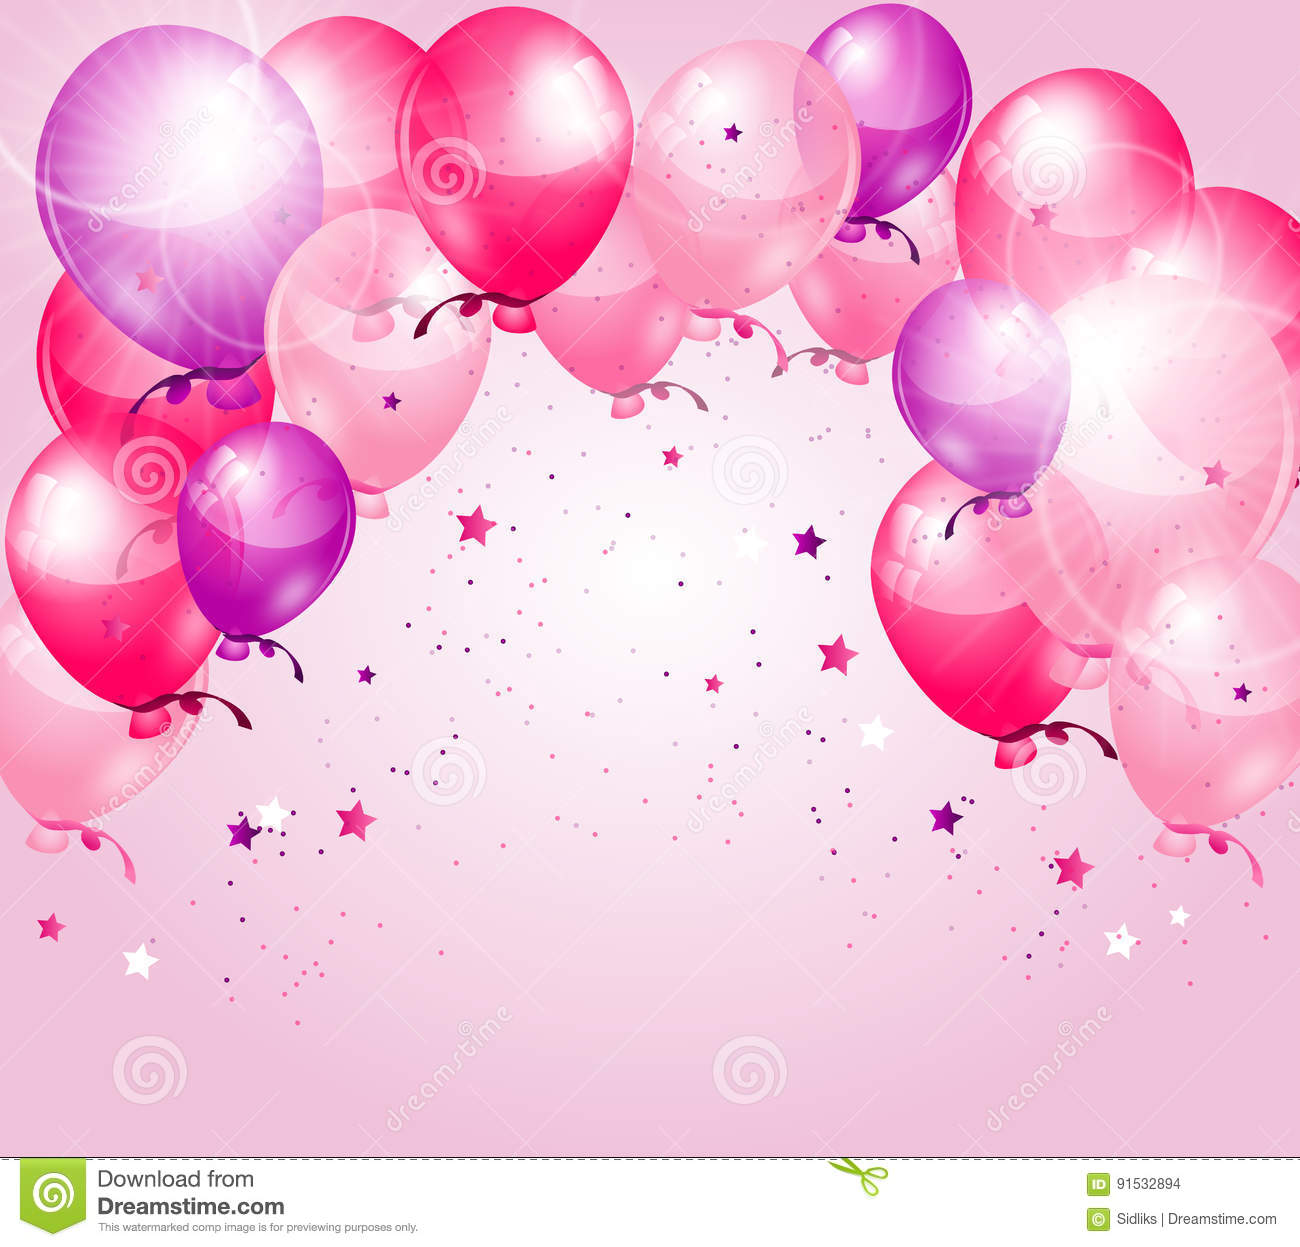 pink birthday balloons wallpaper wwwpixsharkcom